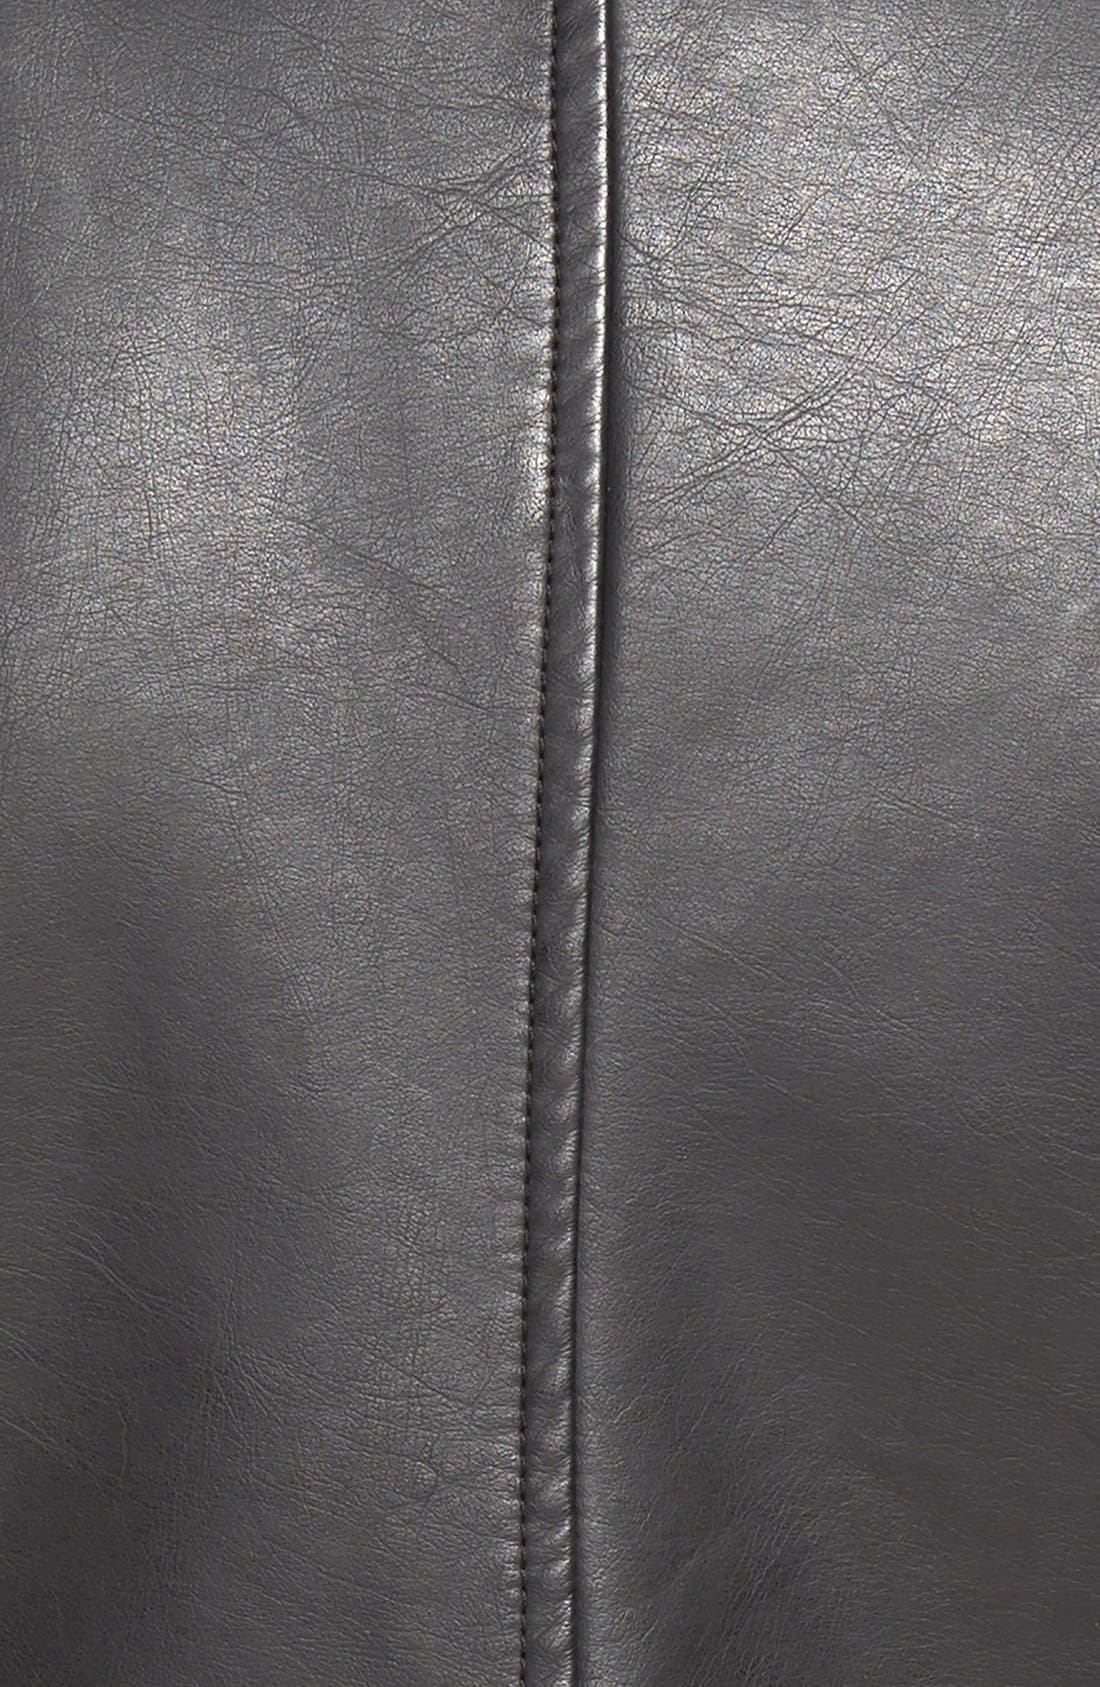 Alternate Image 3  - cupcakes and cashmere 'Union' Faux Leather Biker Jacket